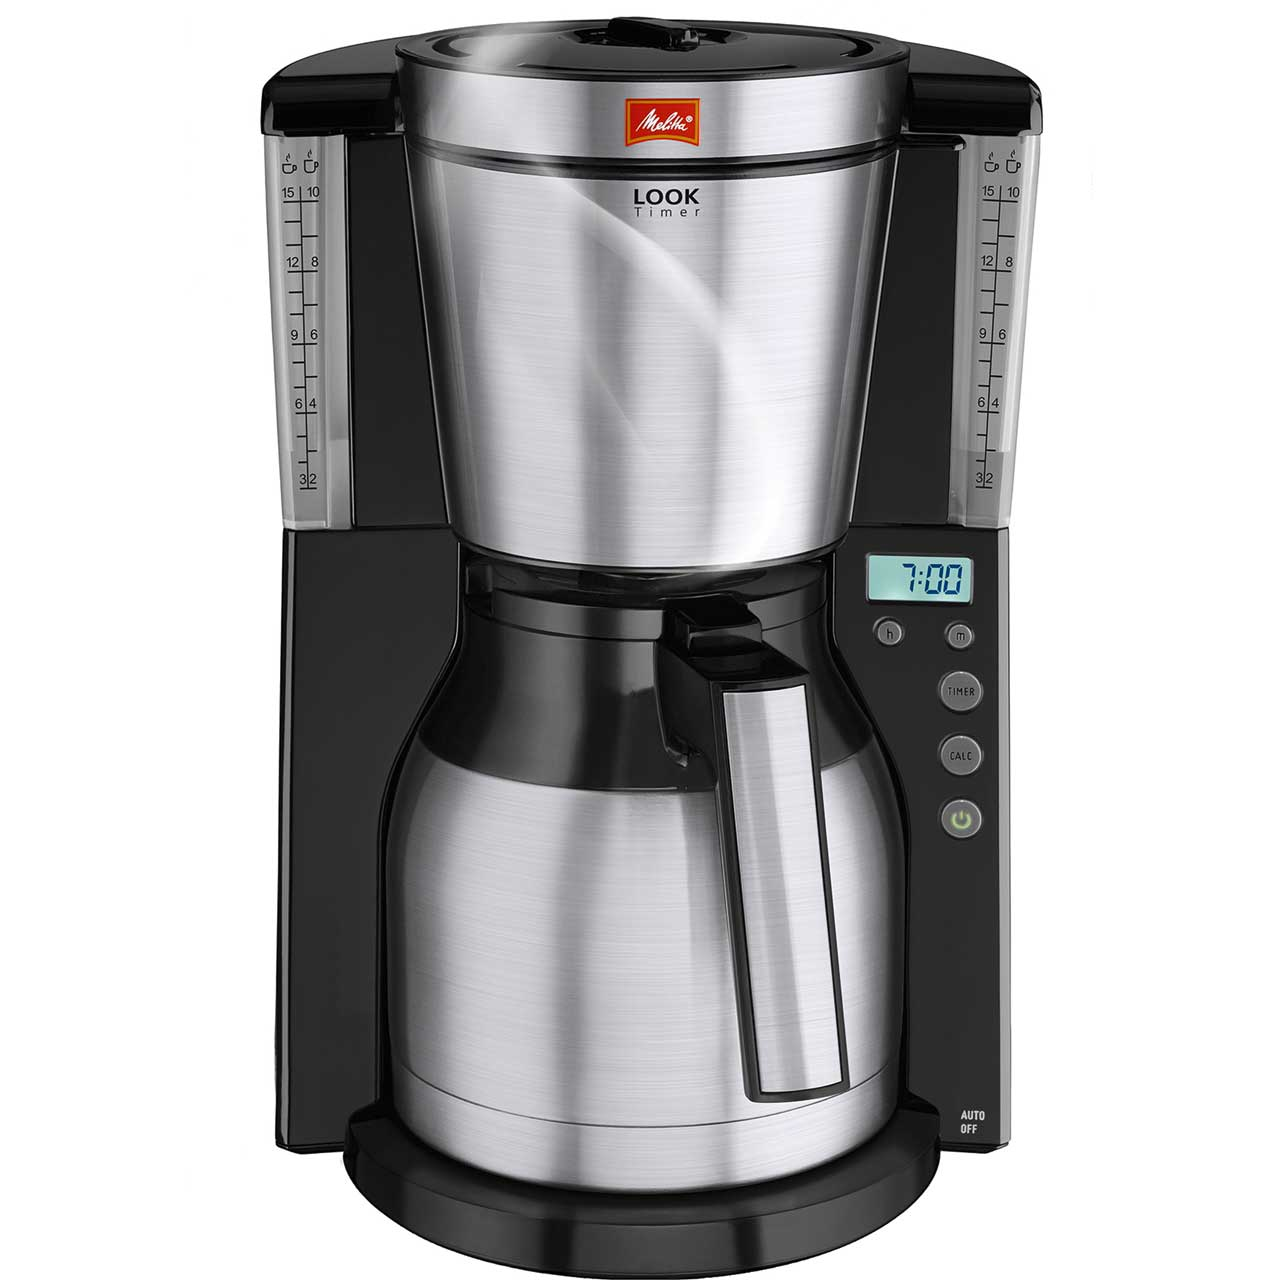 Coffee Maker Automatic Timer : Melitta Look IV Therm Timer 6738044 Filter Coffee Machine with Timer - Black ao.com